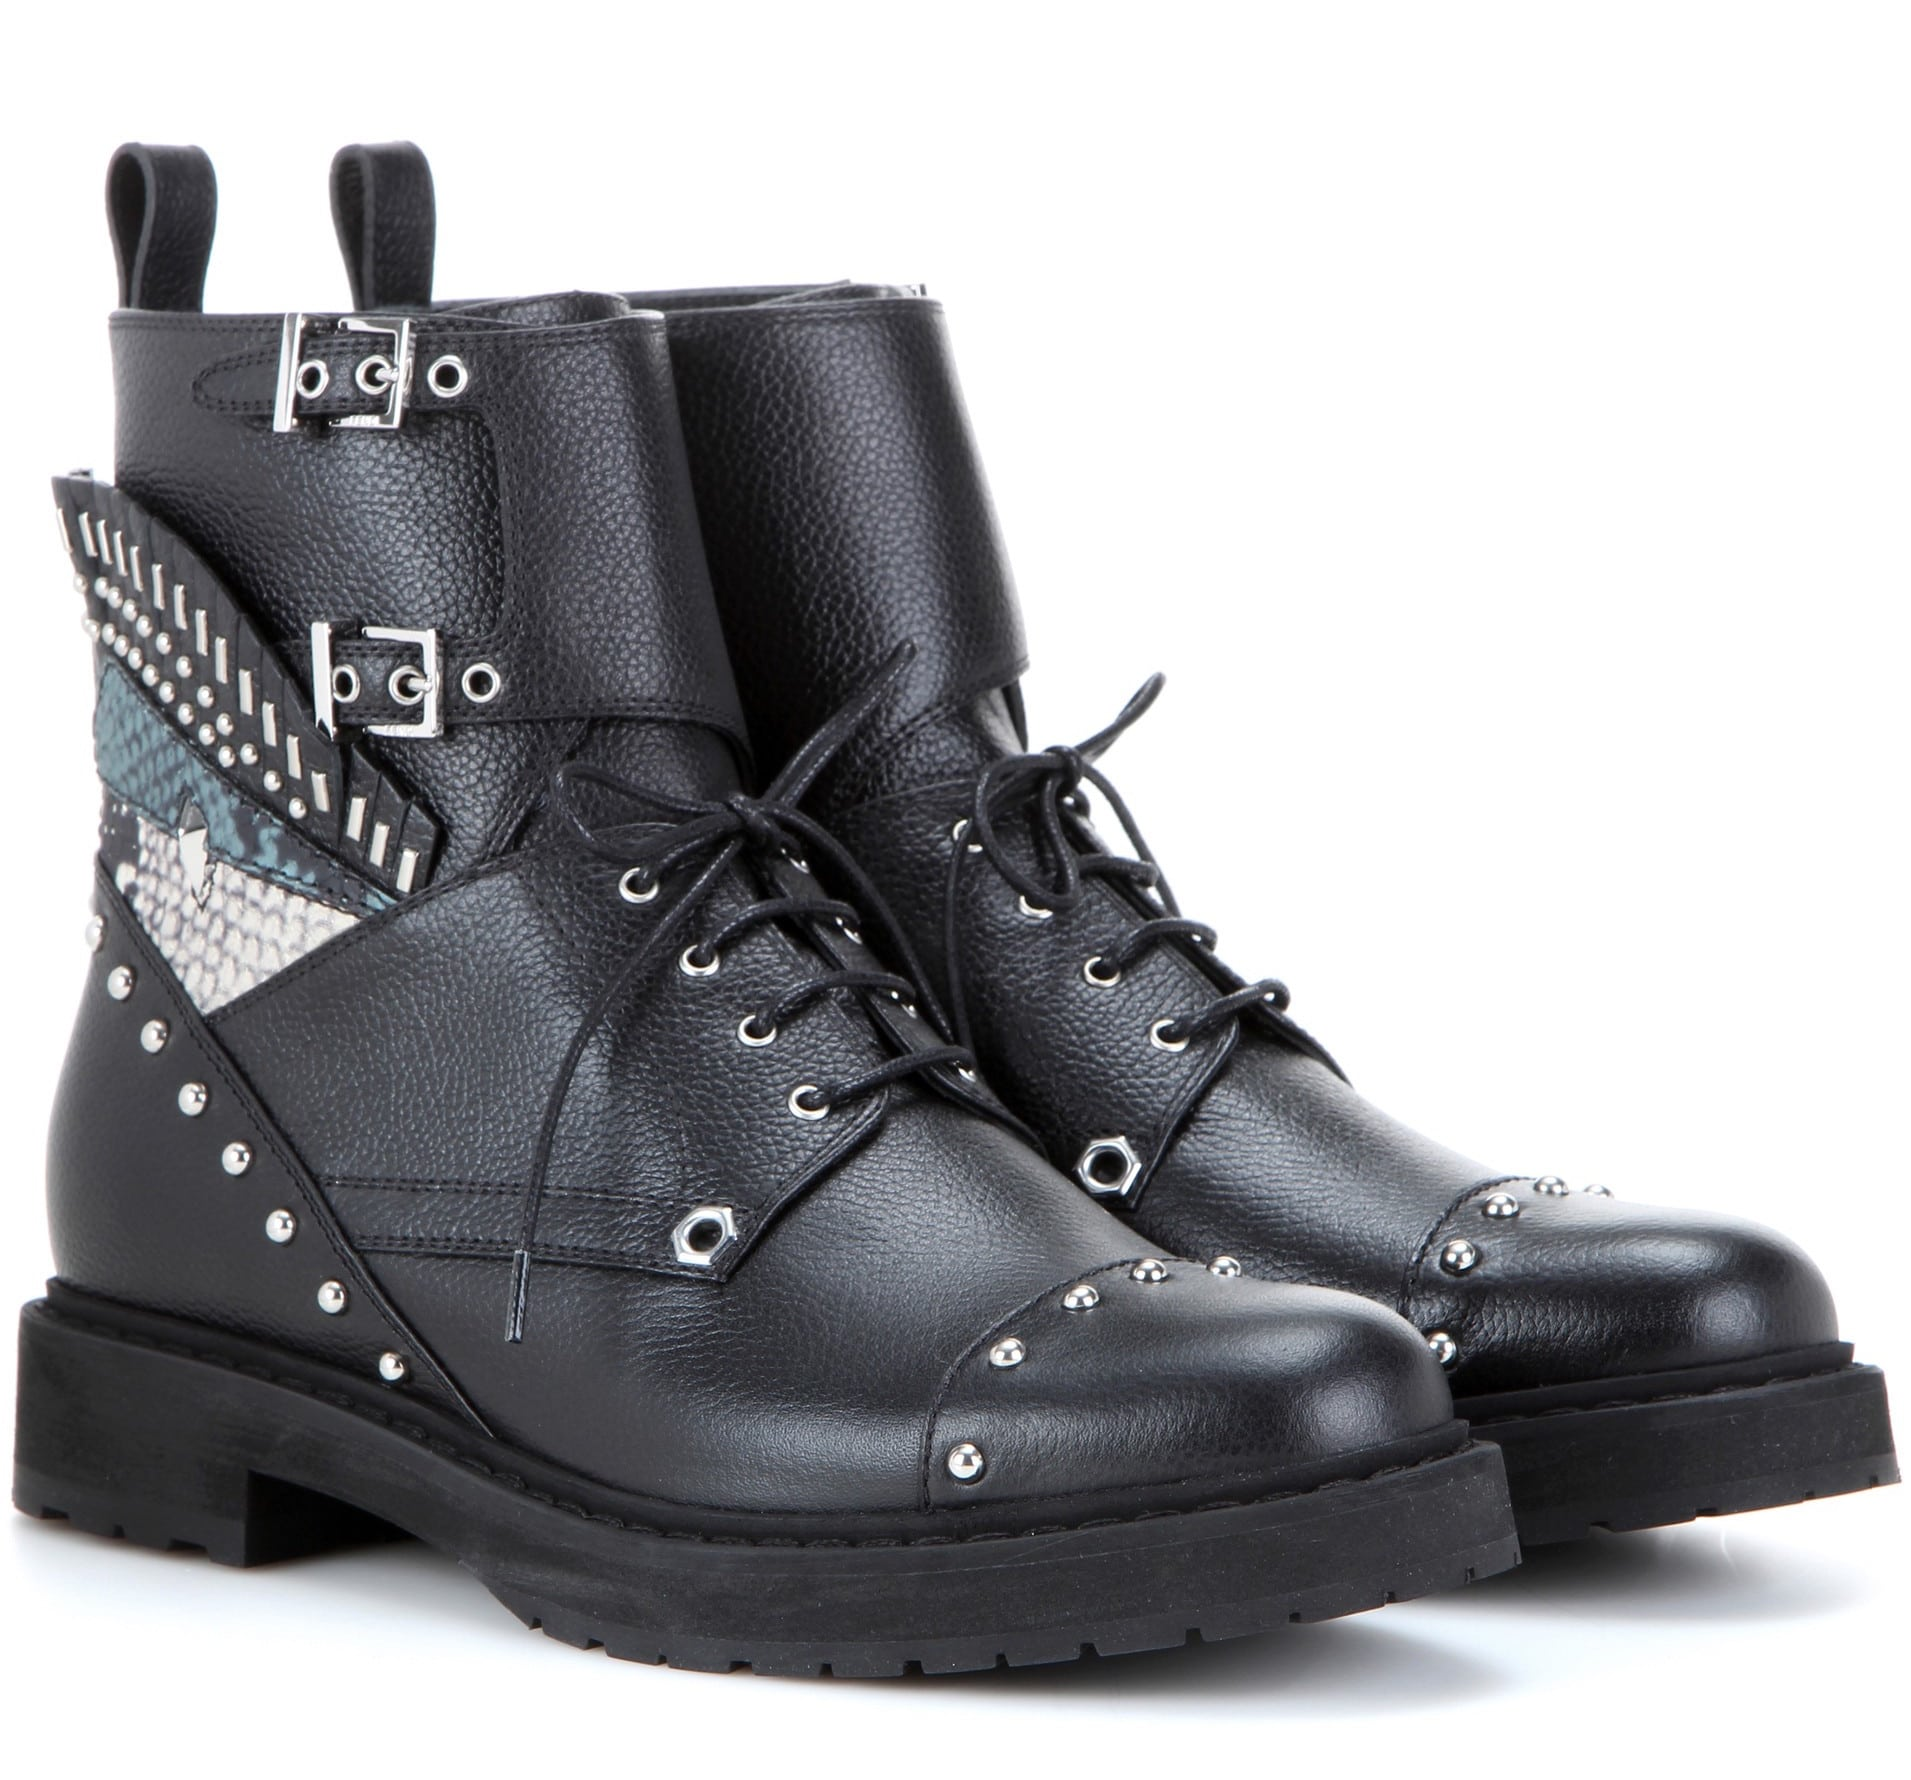 Designer Combat Boots For Fall 2016 – Spotted Fashion